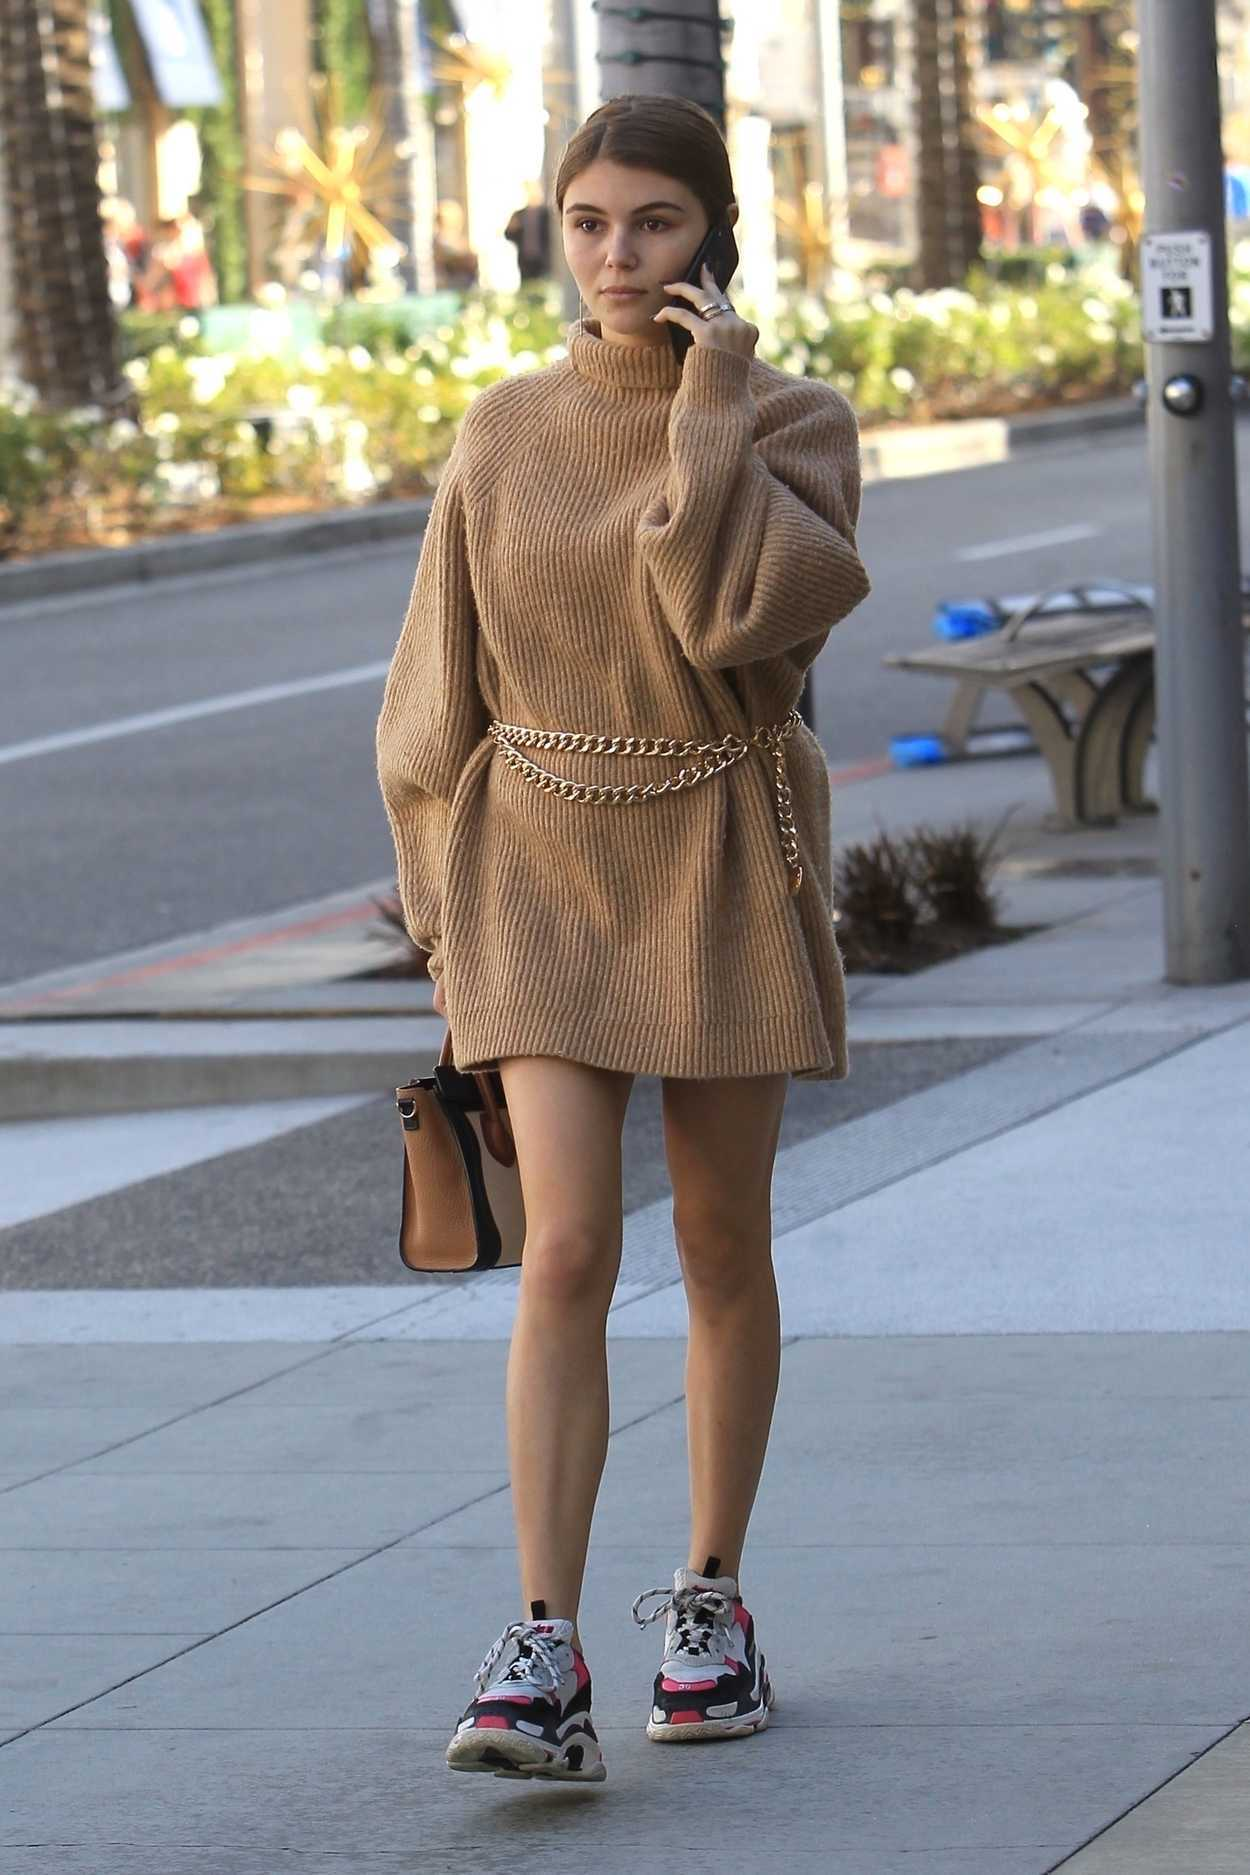 olivia jade in a beige dress goes shopping in beverly